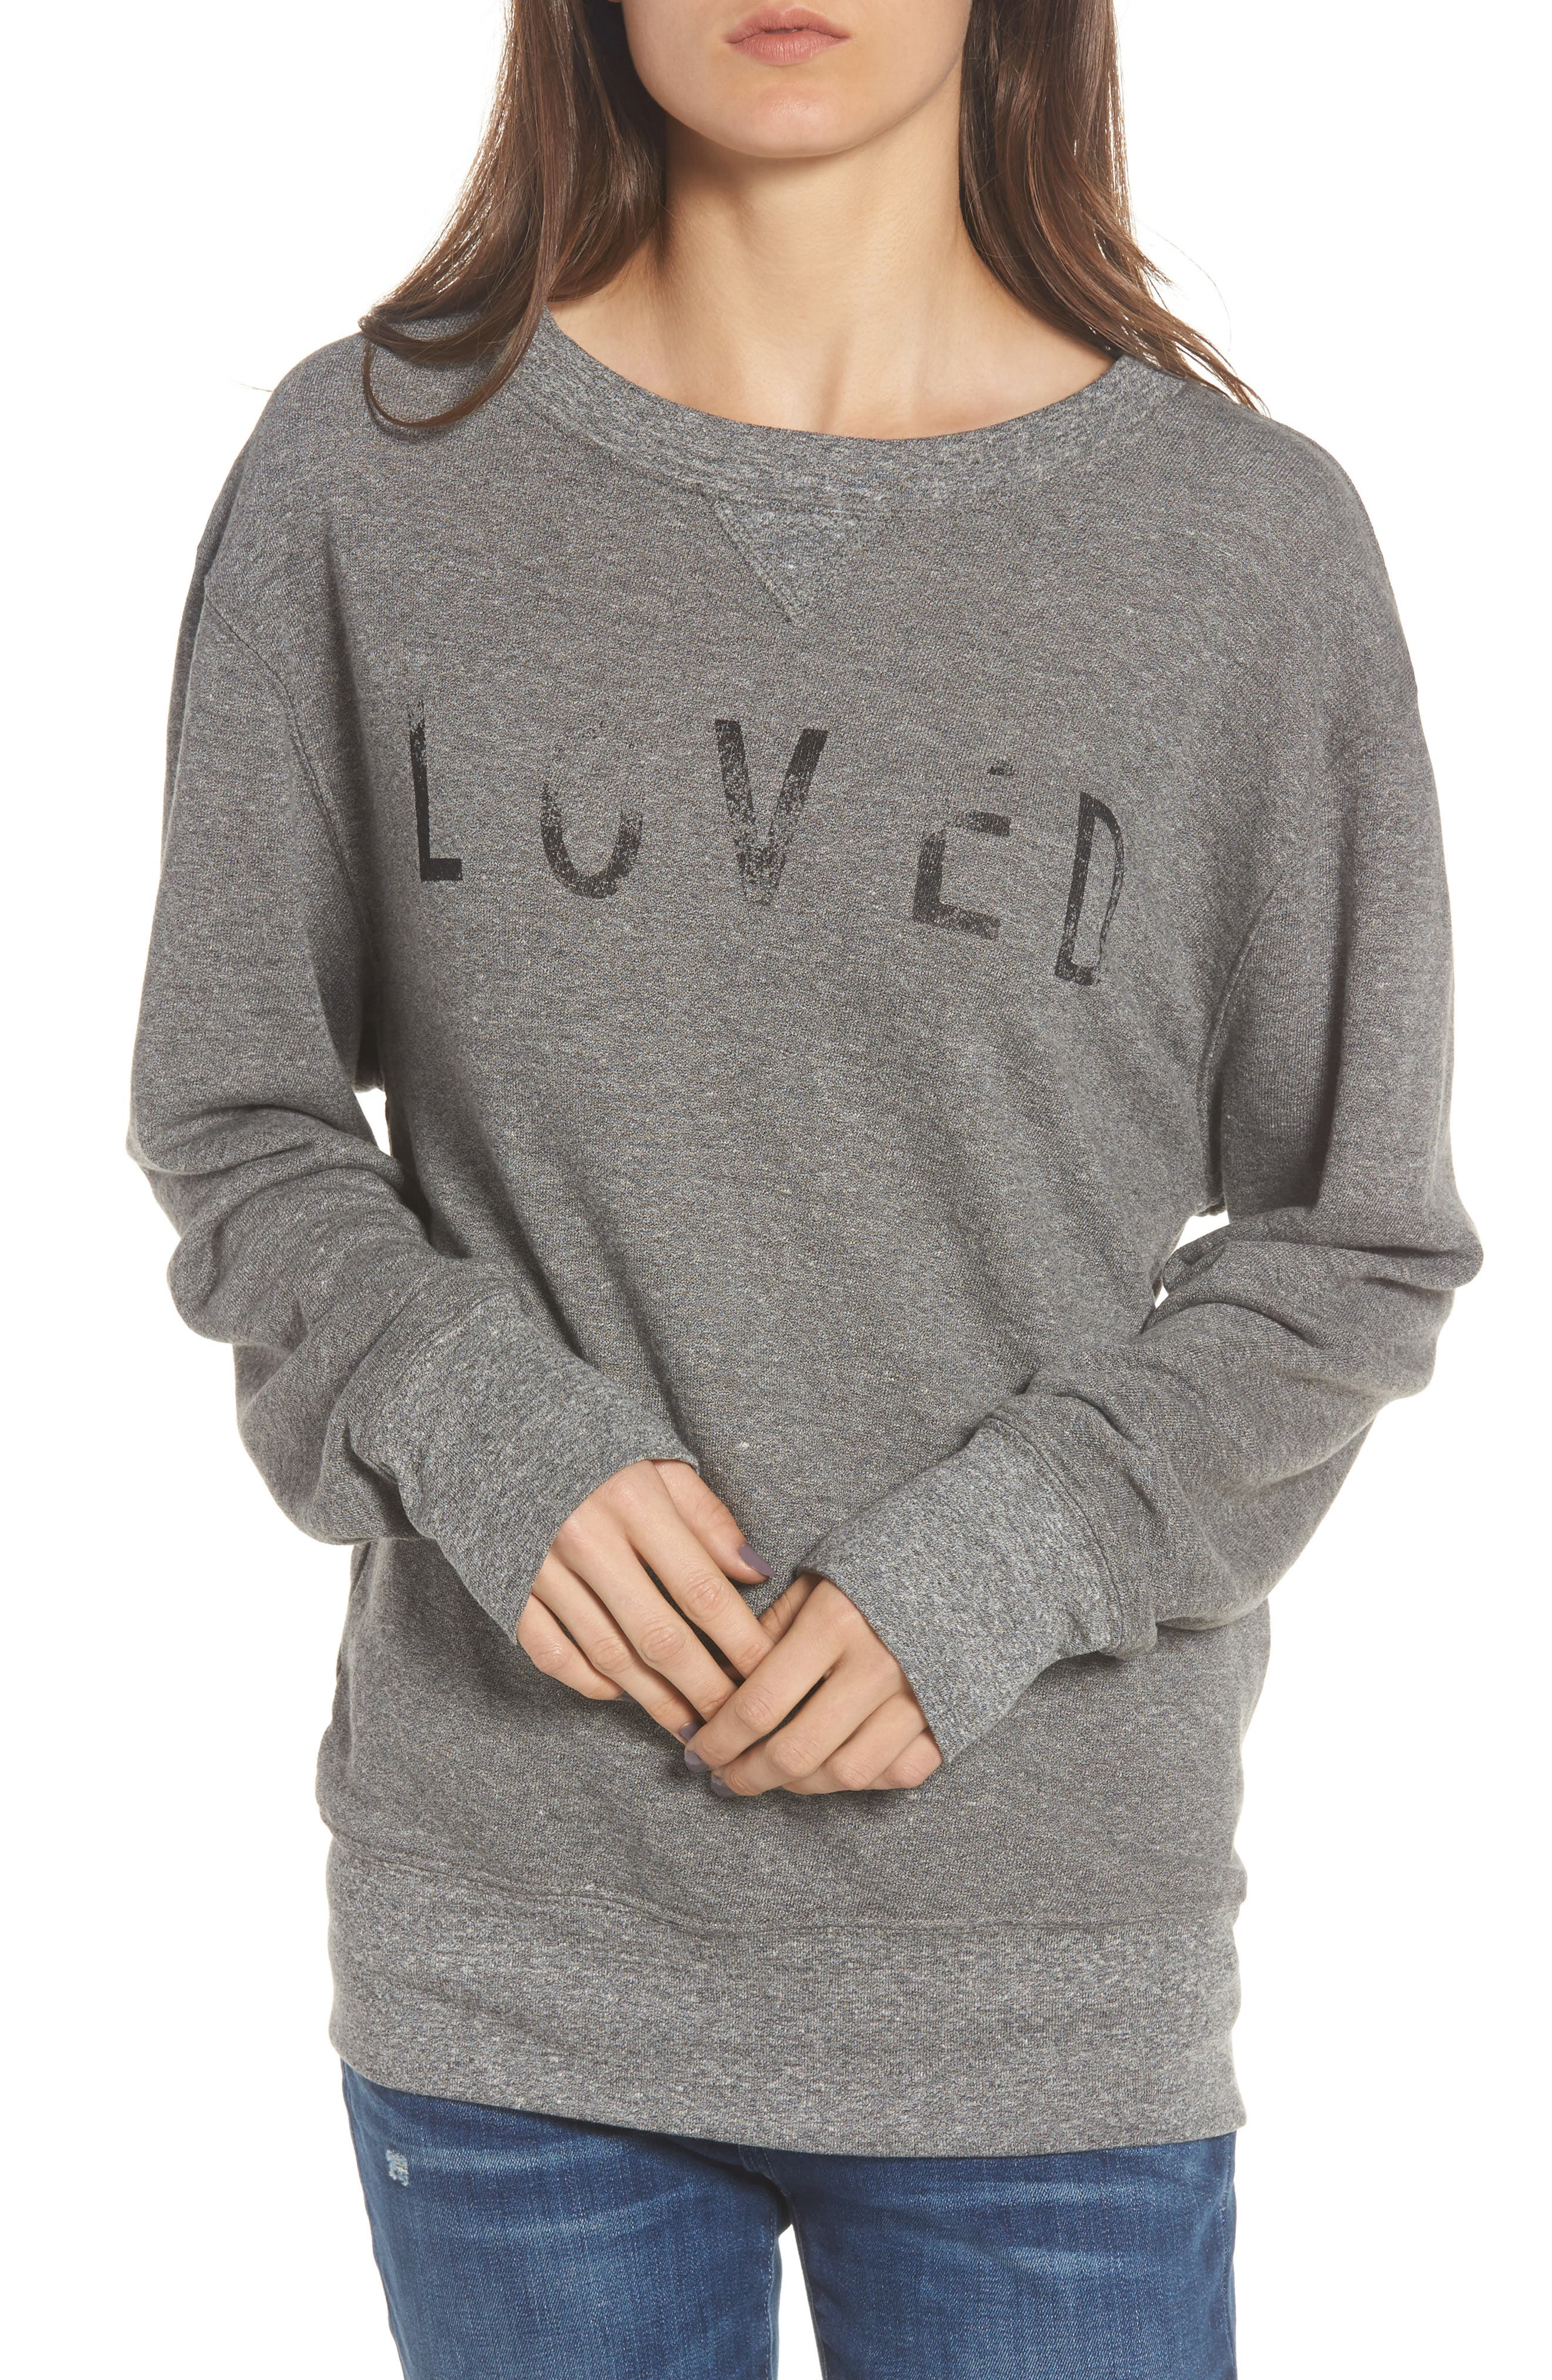 Alternate Image 1 Selected - Current/Elliott Heathered Slouchy Sweatshirt